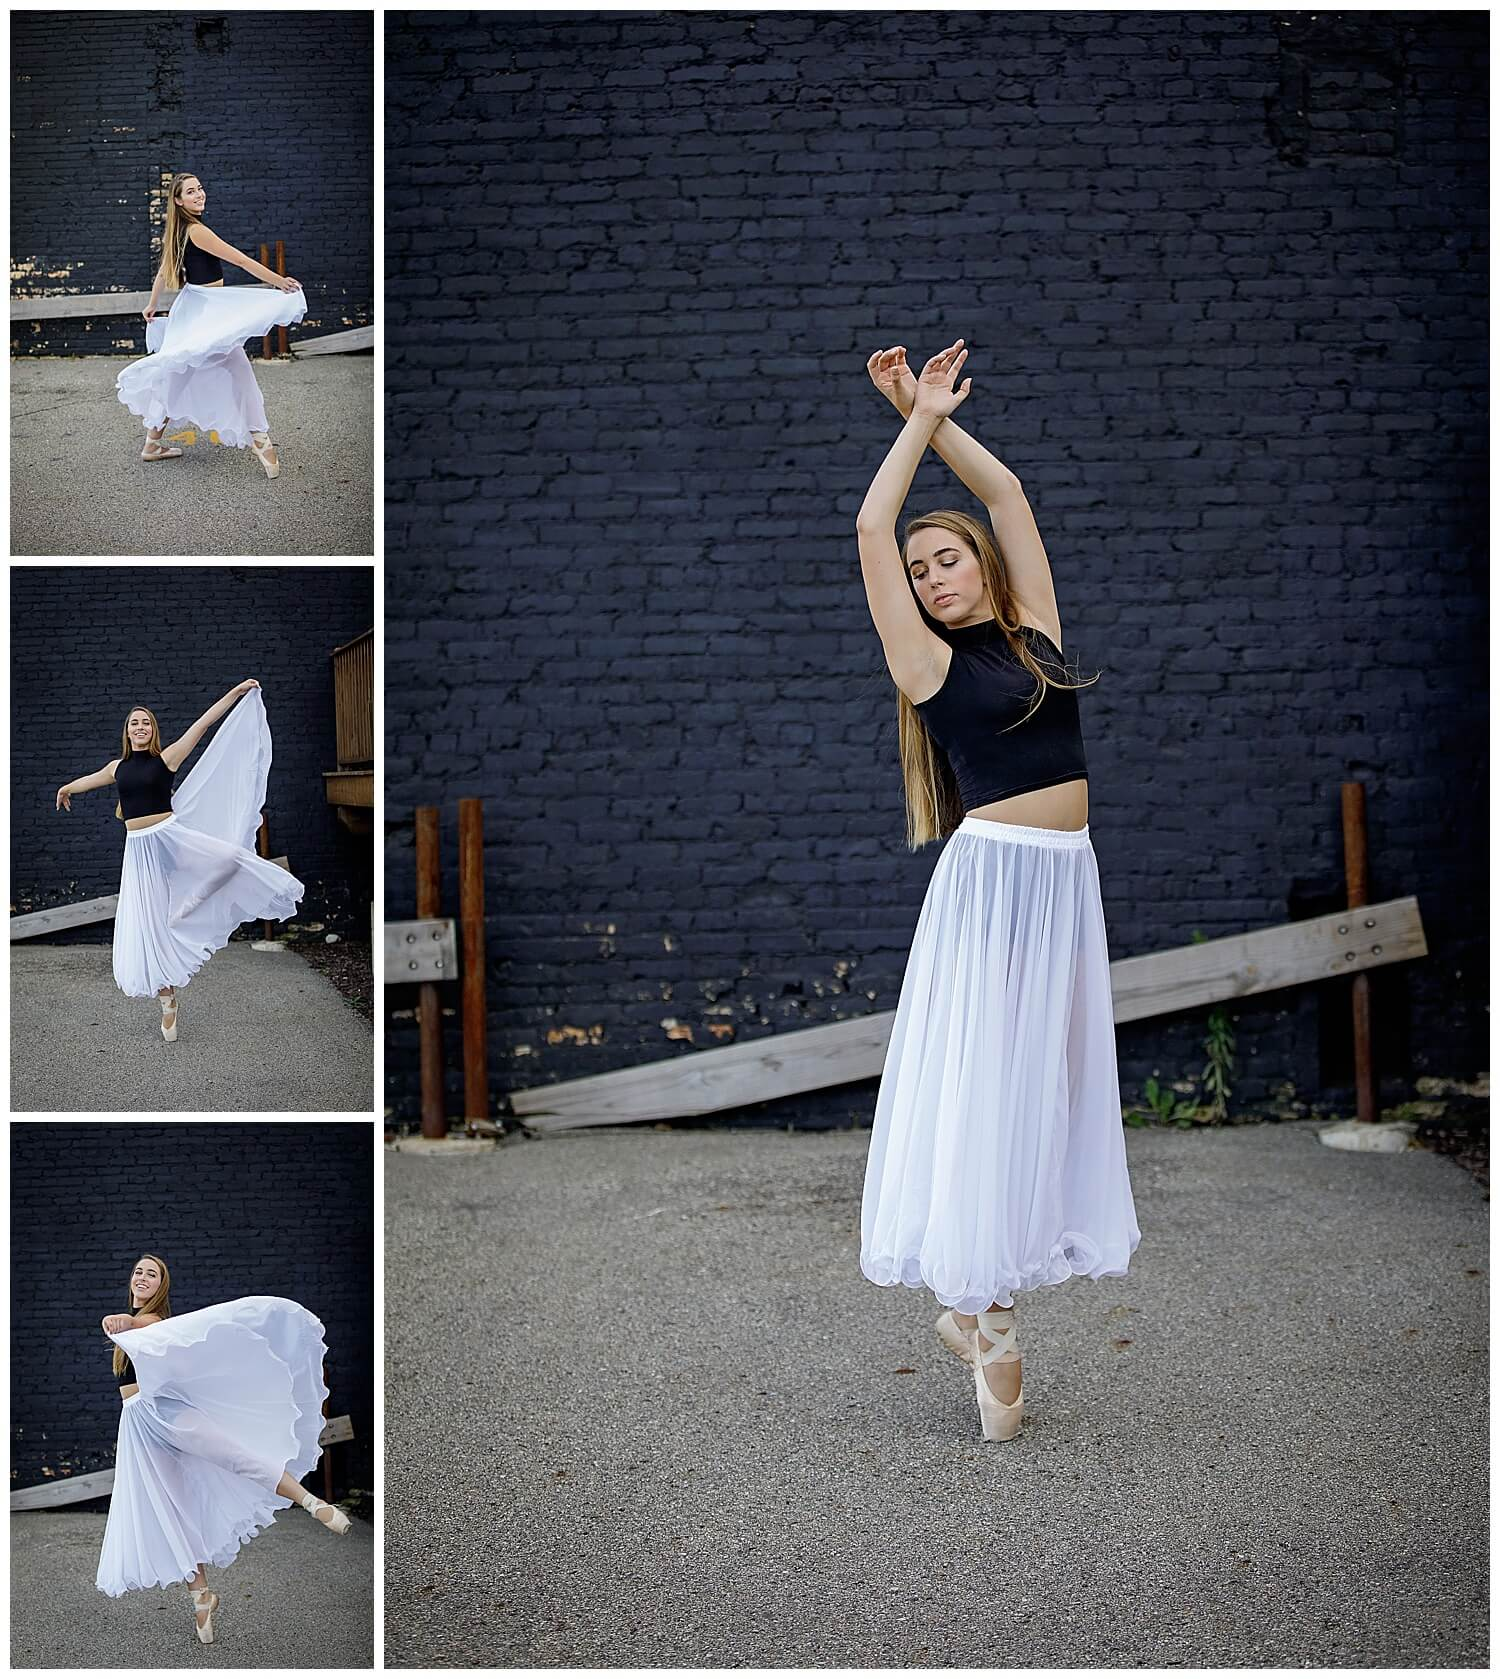 Dance senior pictures with long flowy white skirt and black wall.  dancer with pointe shoes